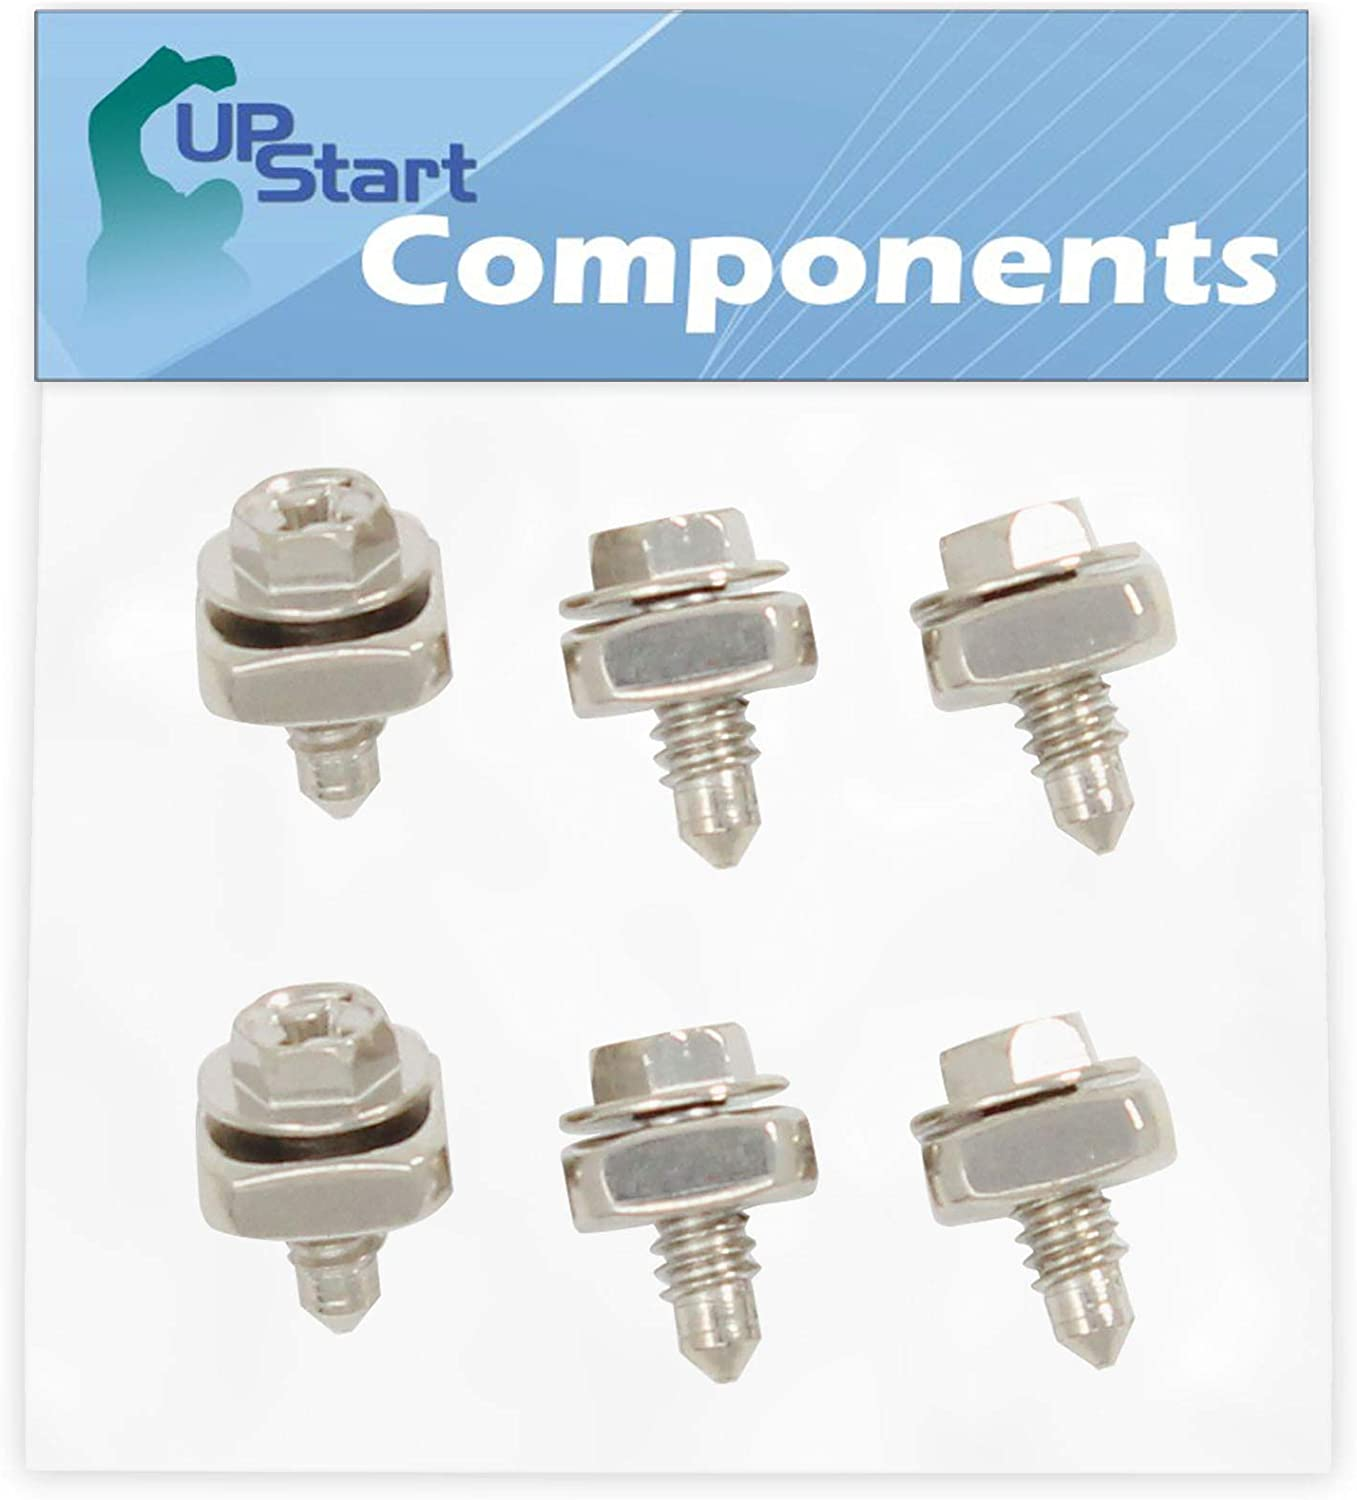 6-Pieces 279393 Dryer Cord Screw Kit Replacement for Kenmore/Sears 110.96576200 Dryer - Compatible with 279393 Terminal Block Screw Kit